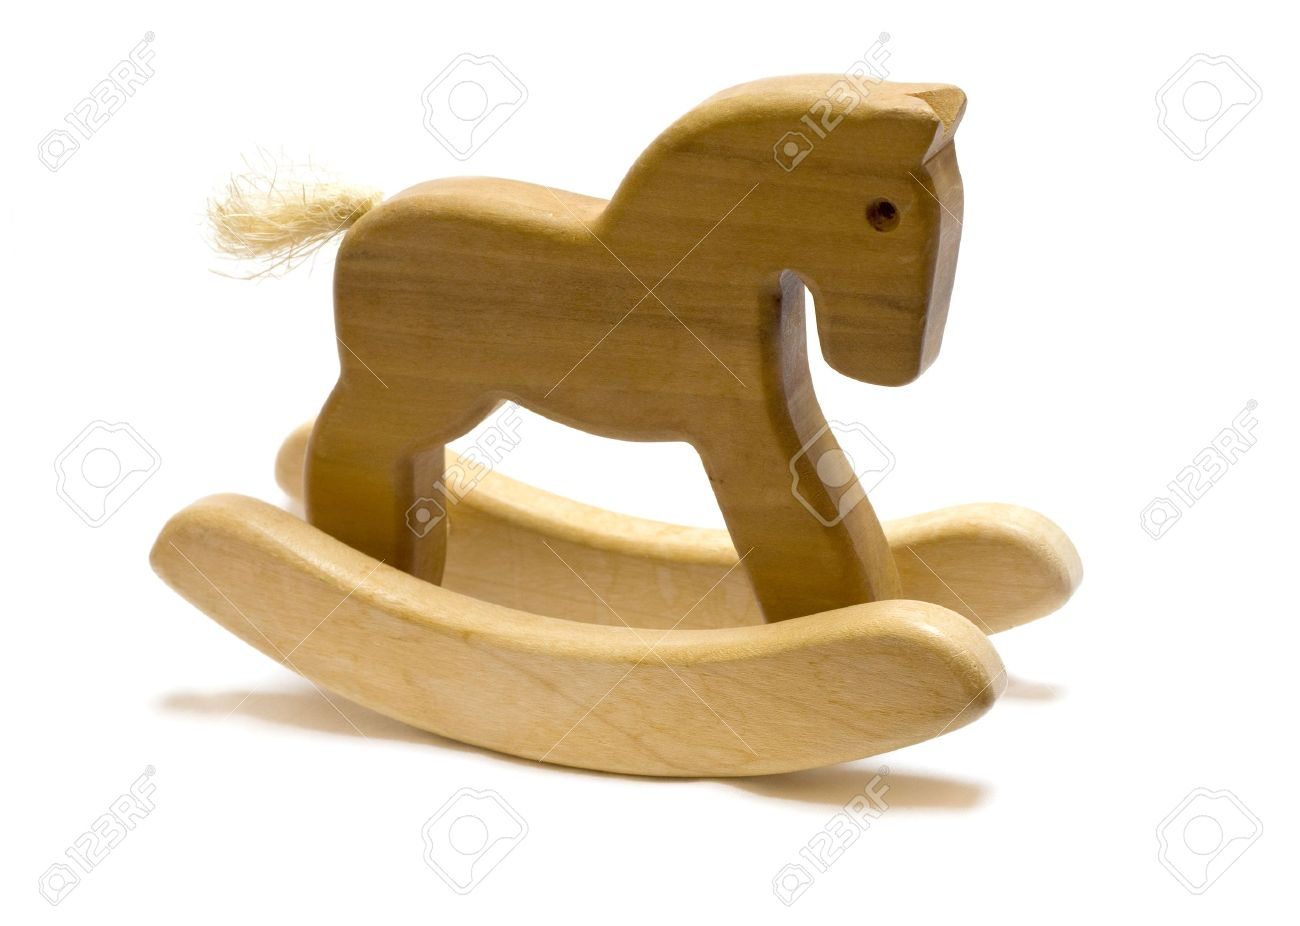 Classic homemade wooden rocking horse on white background. Stock Photo - 8189763